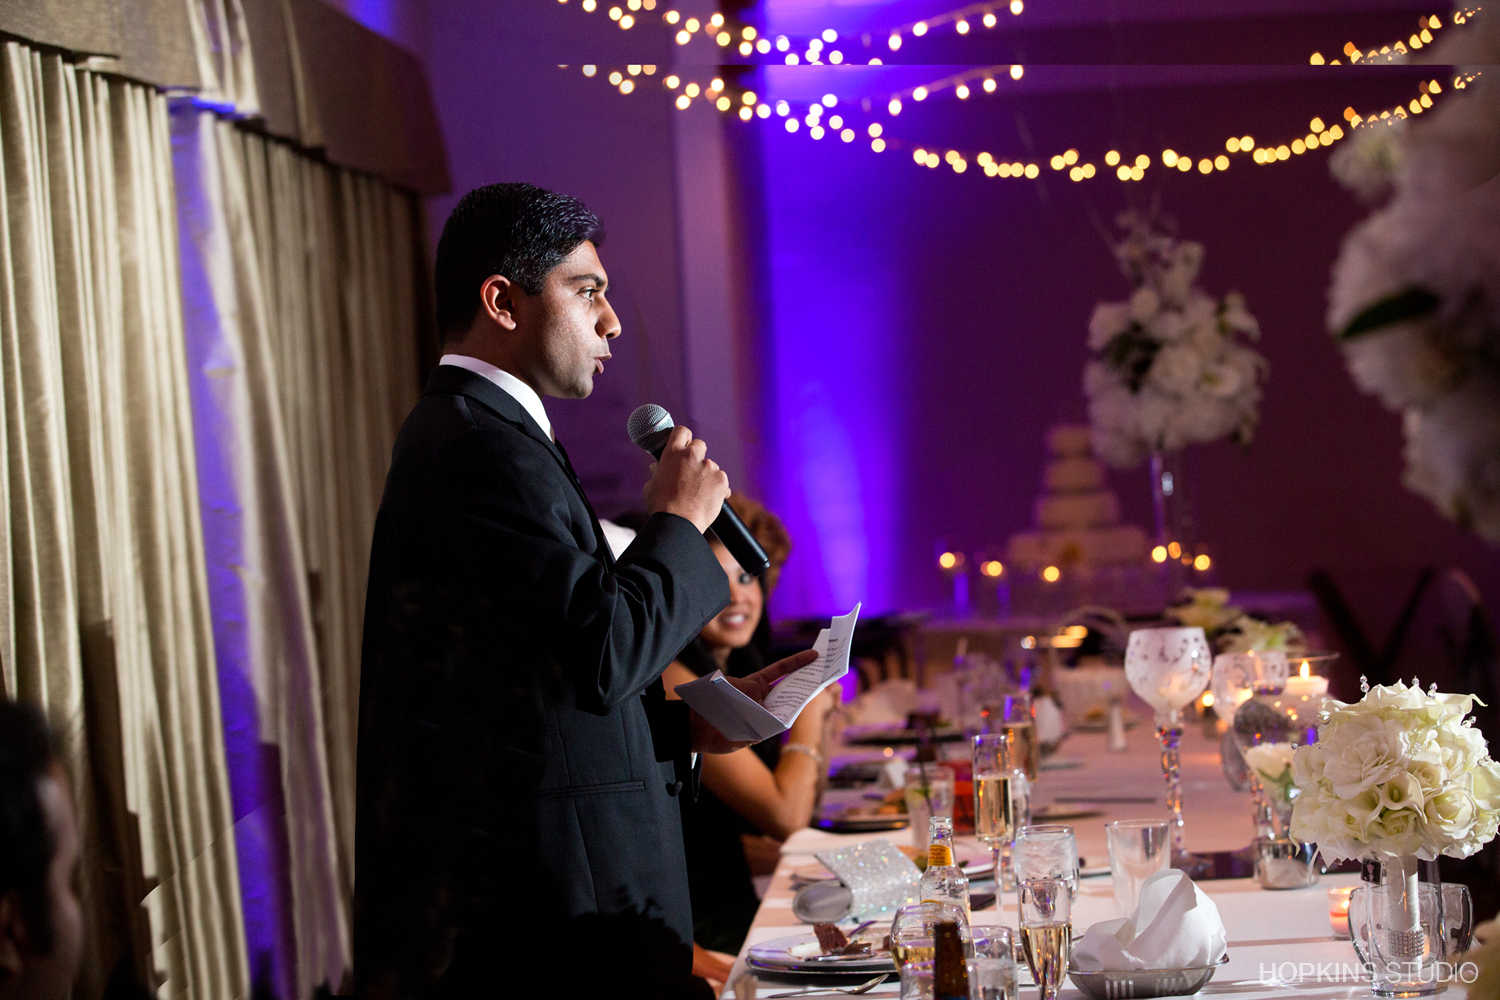 wedding-photography-Knollwood-Country-Club-South-Bend-Indiana_71.jpg